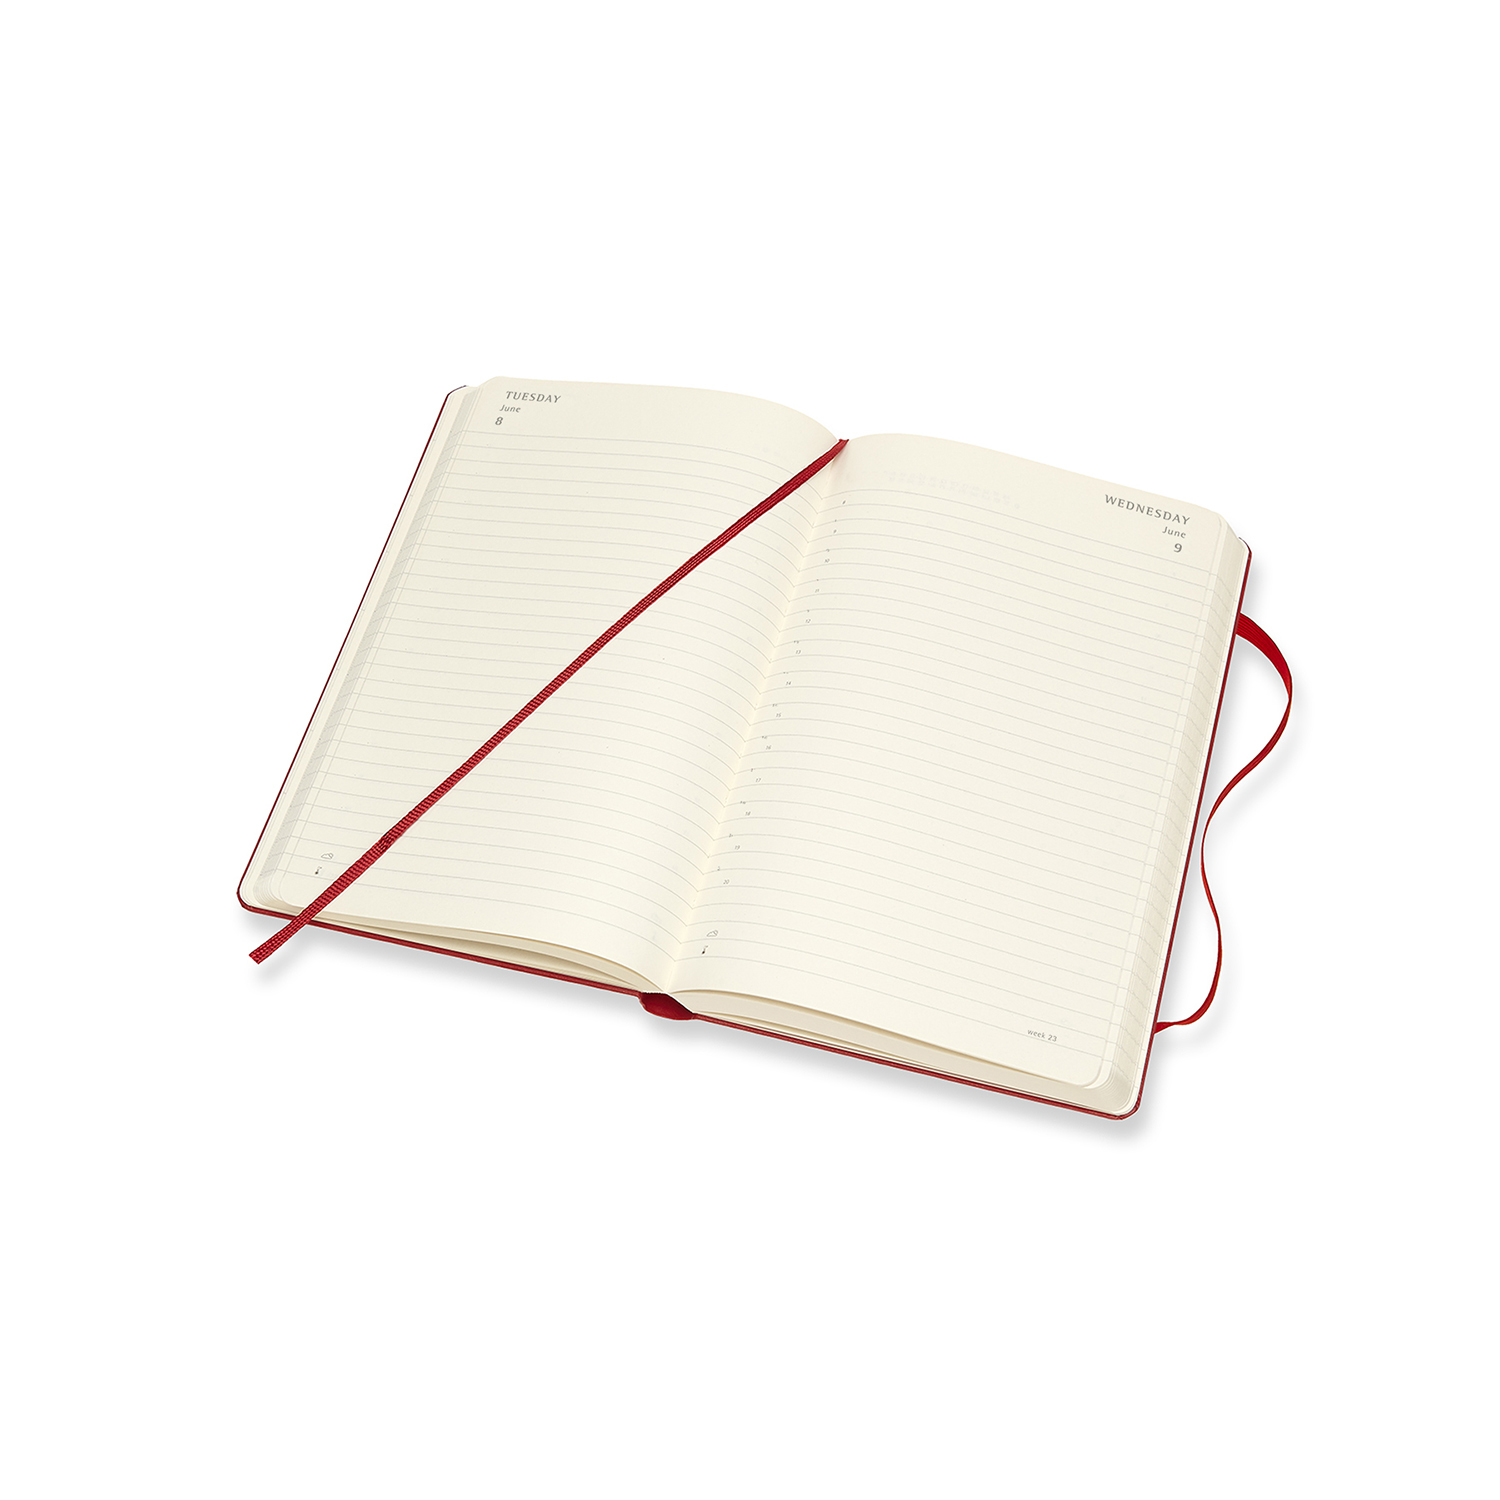 Buy Moleskine 2021 Diary Large Hard Cover 12 Month Daily Scarlet Red At Mighty Ape Nz